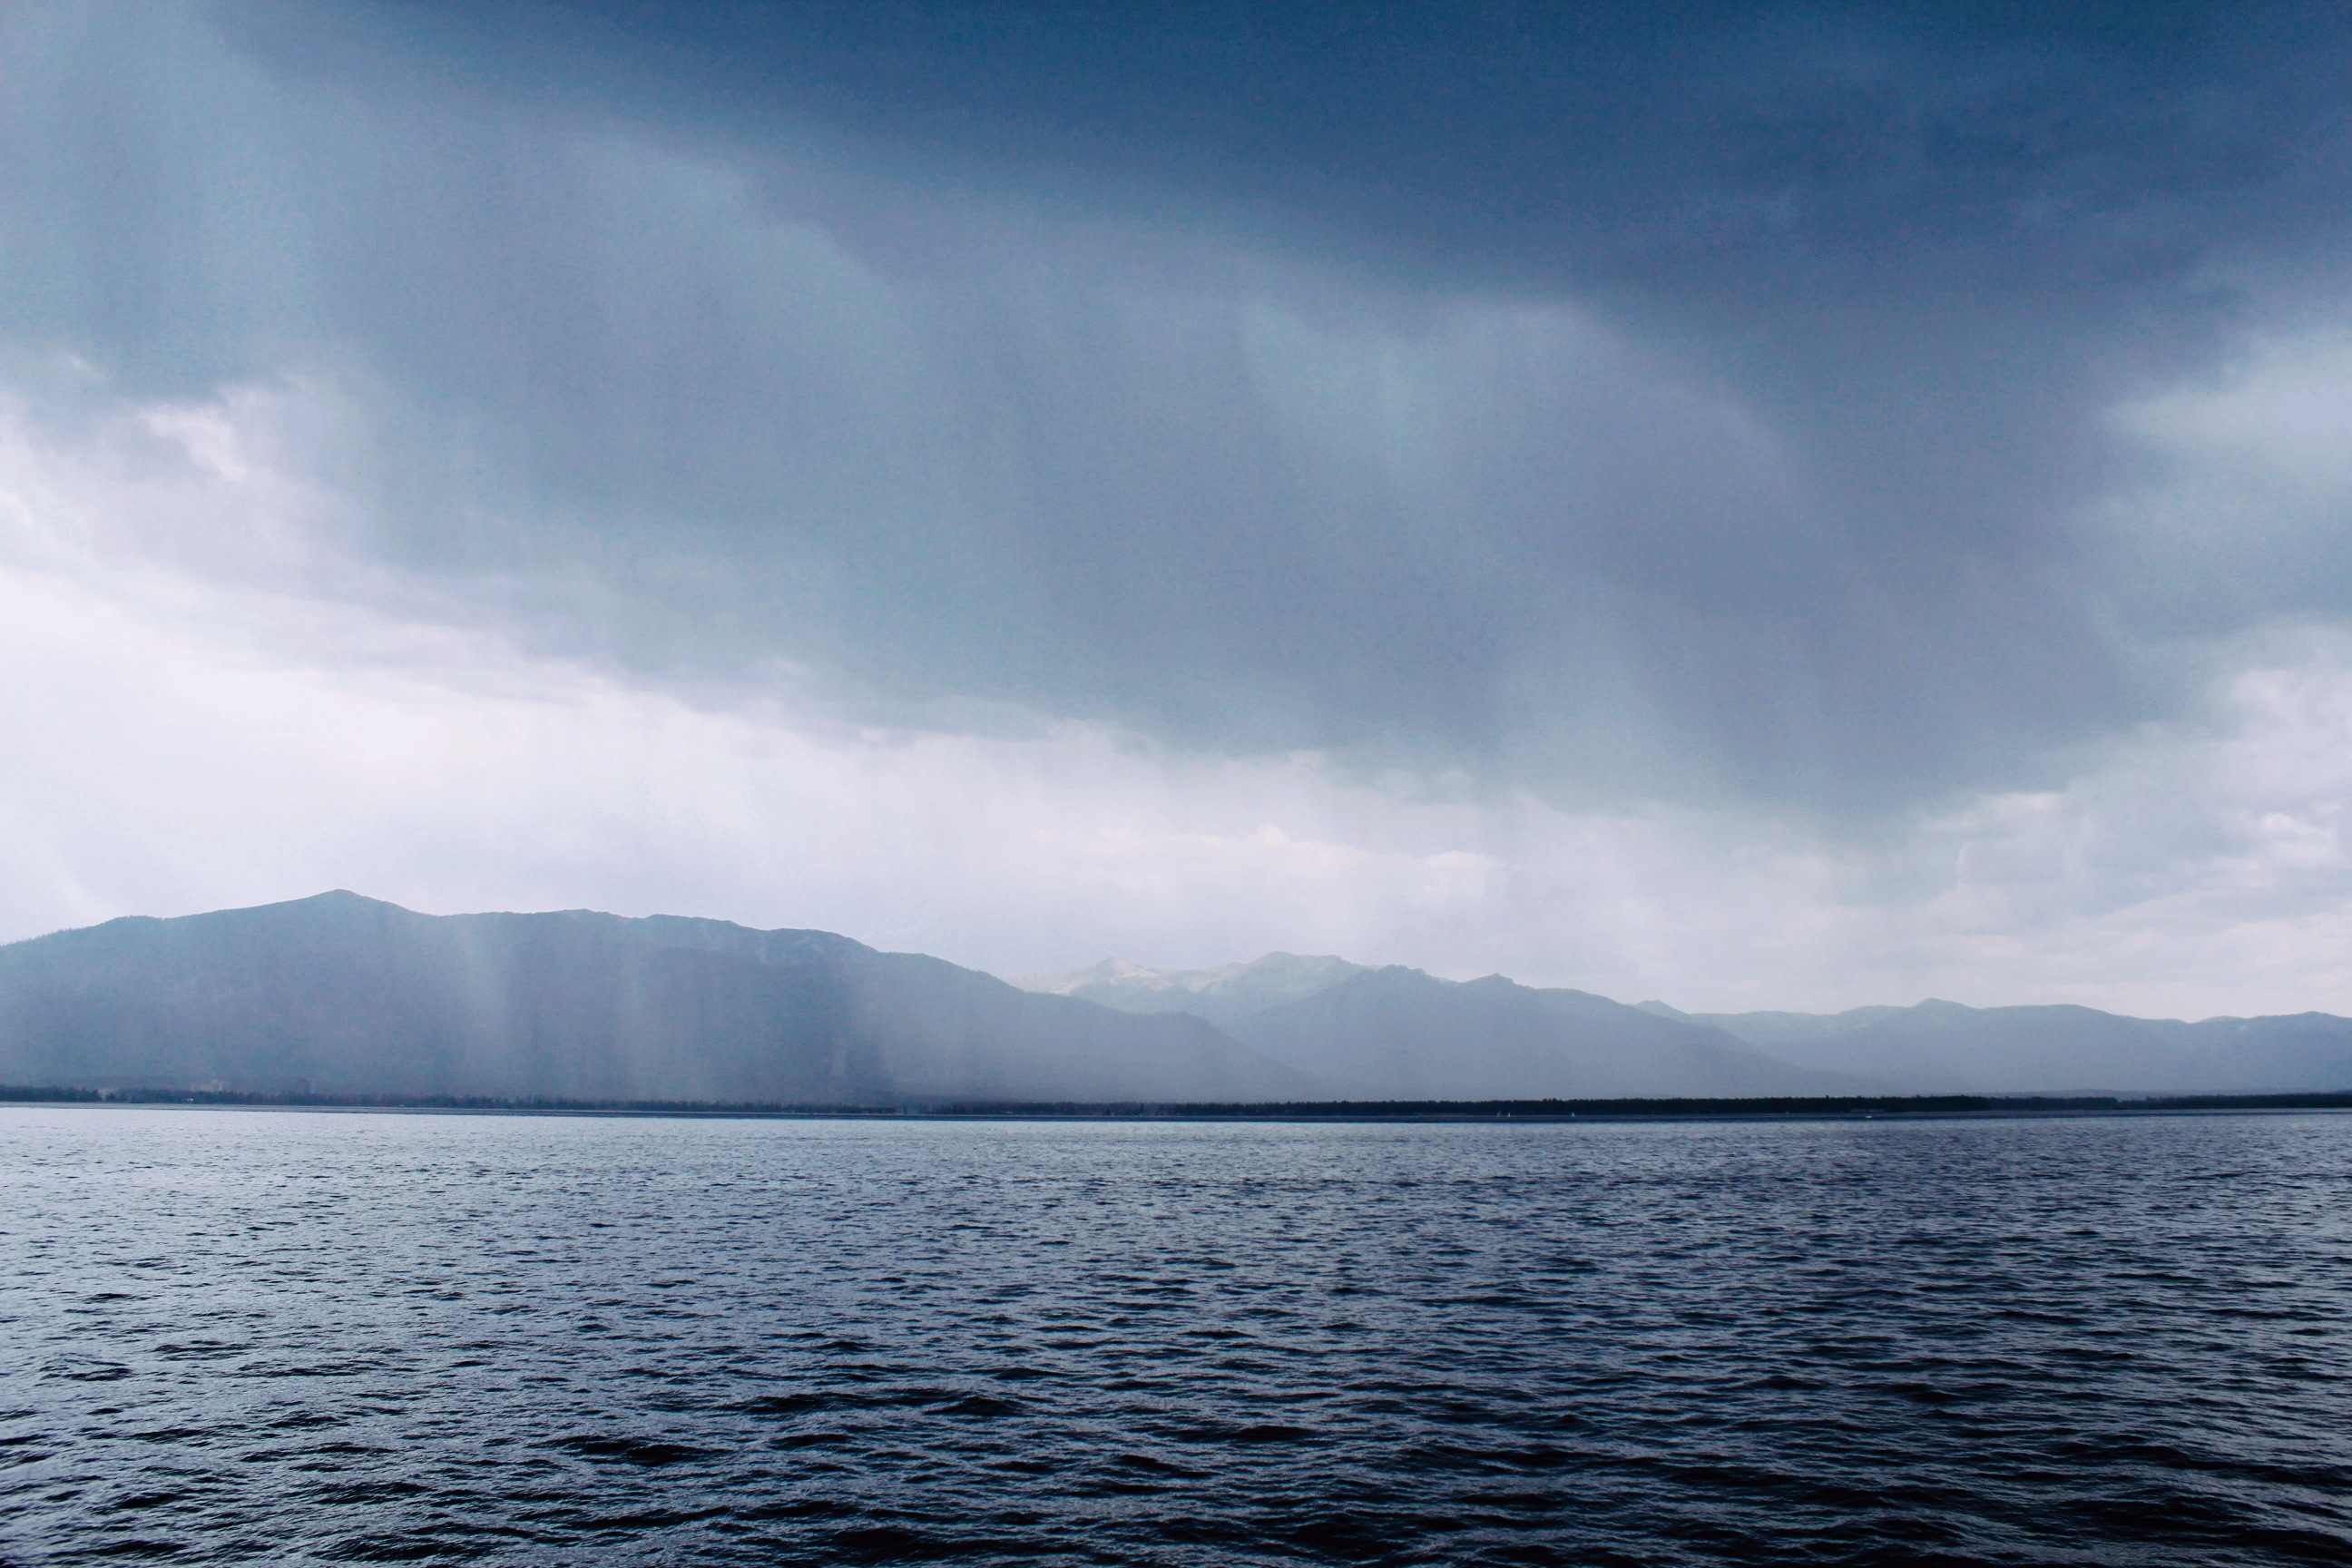 Rain on the lake, mountains, lakes, rain, water, cold, clouds